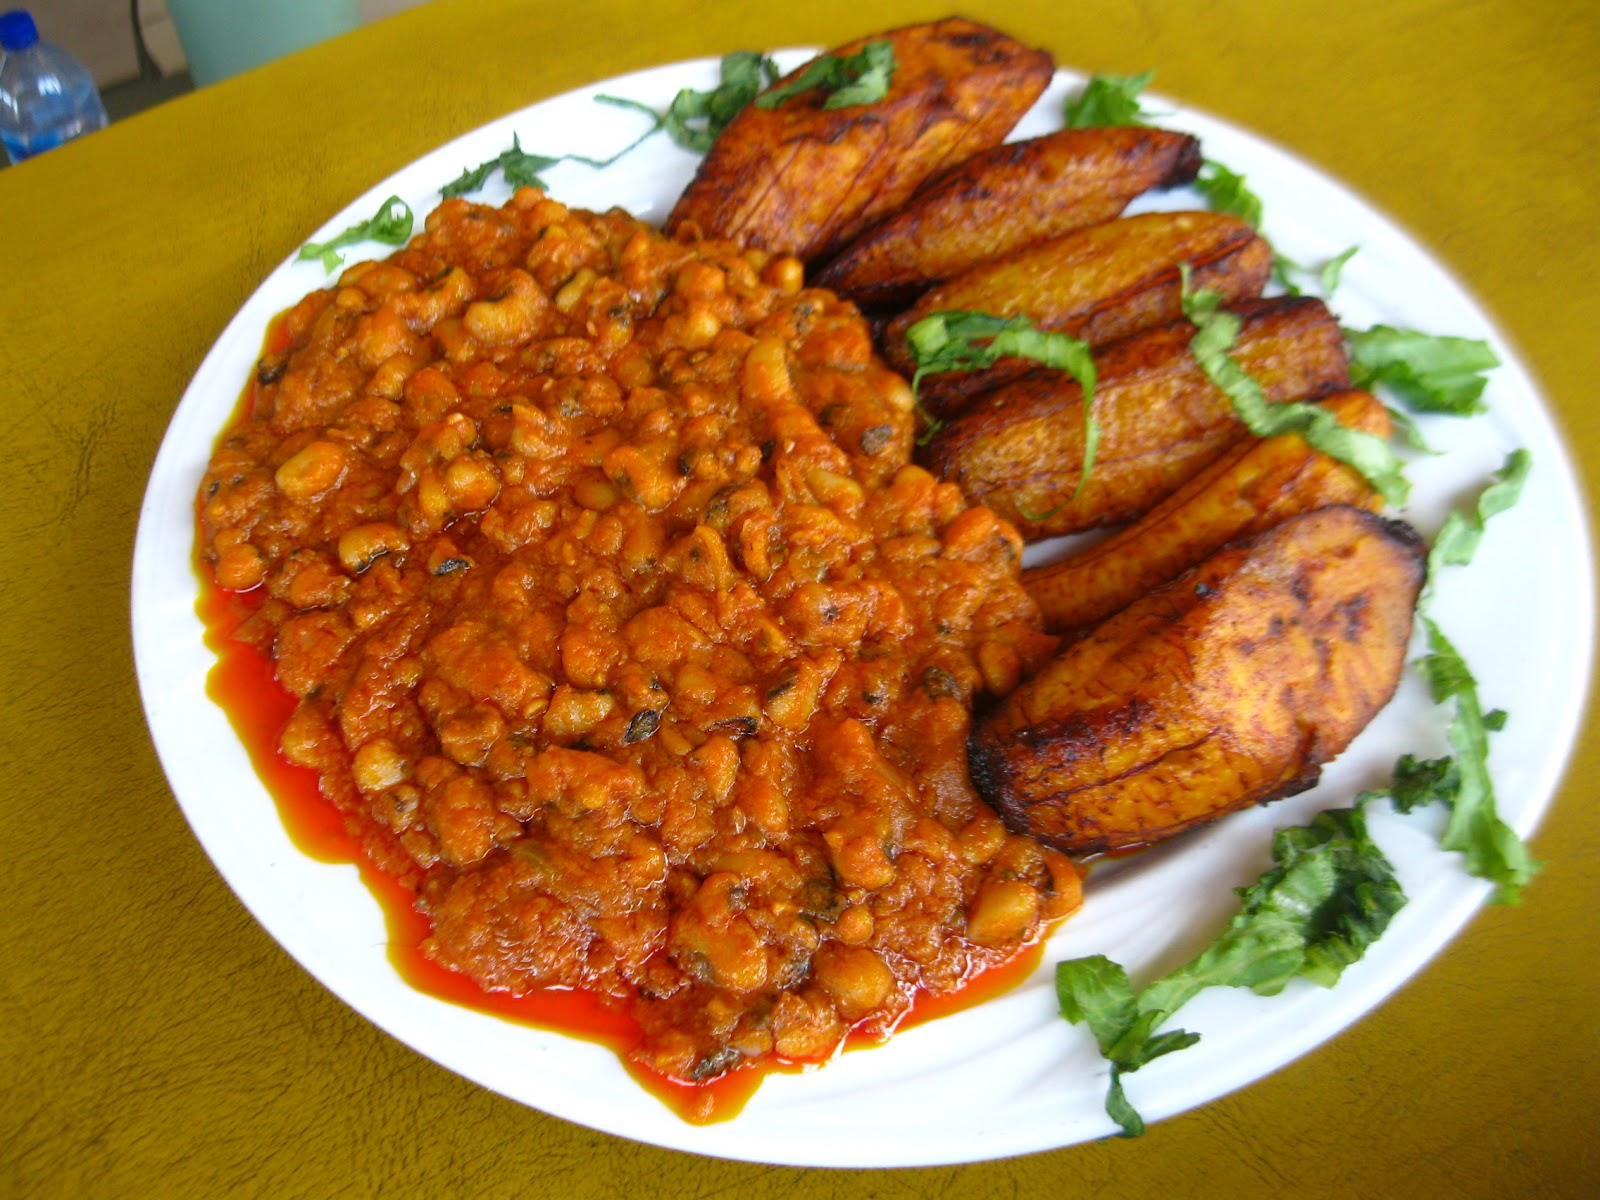 Fried Ripe Plantains with Beans Stew (Red Red)